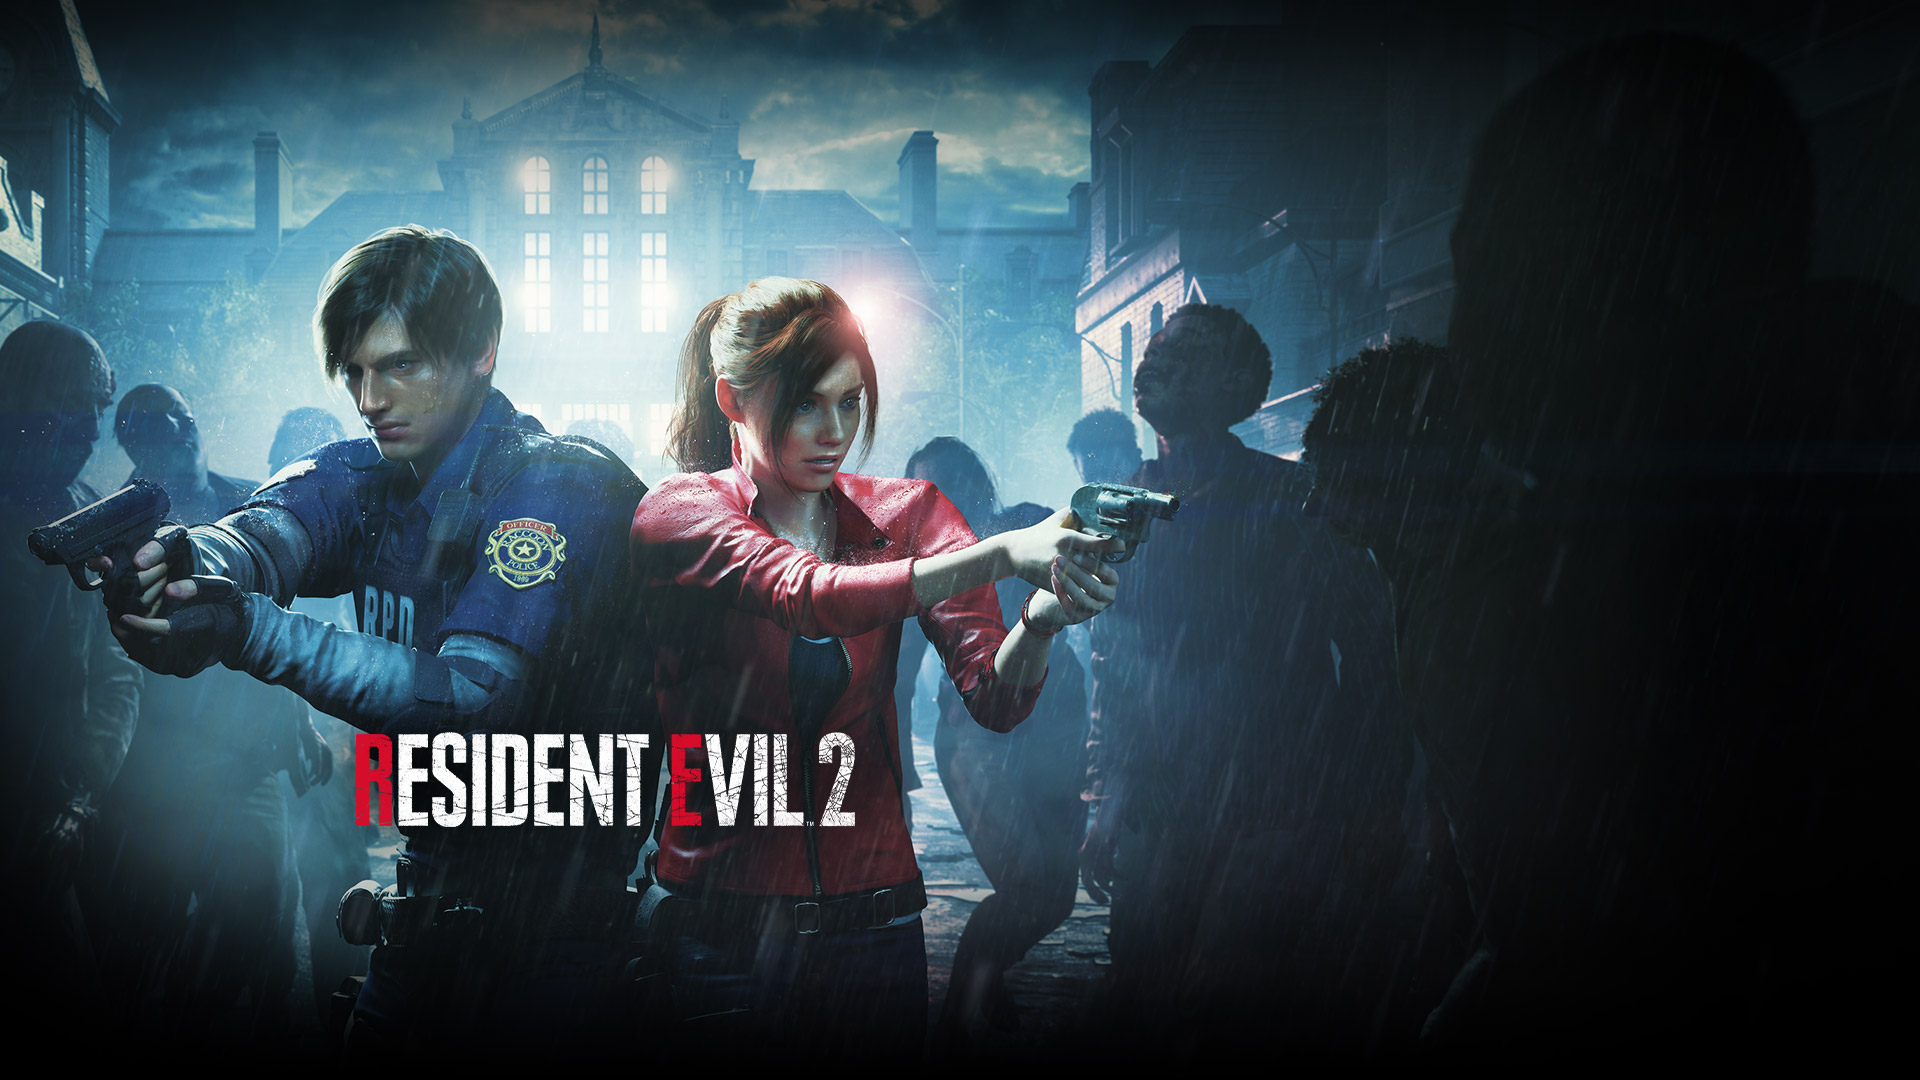 Resident Evil 2, Leon Kennedy and Claire Redfield stand side by side holding up guns at surrounding zombies